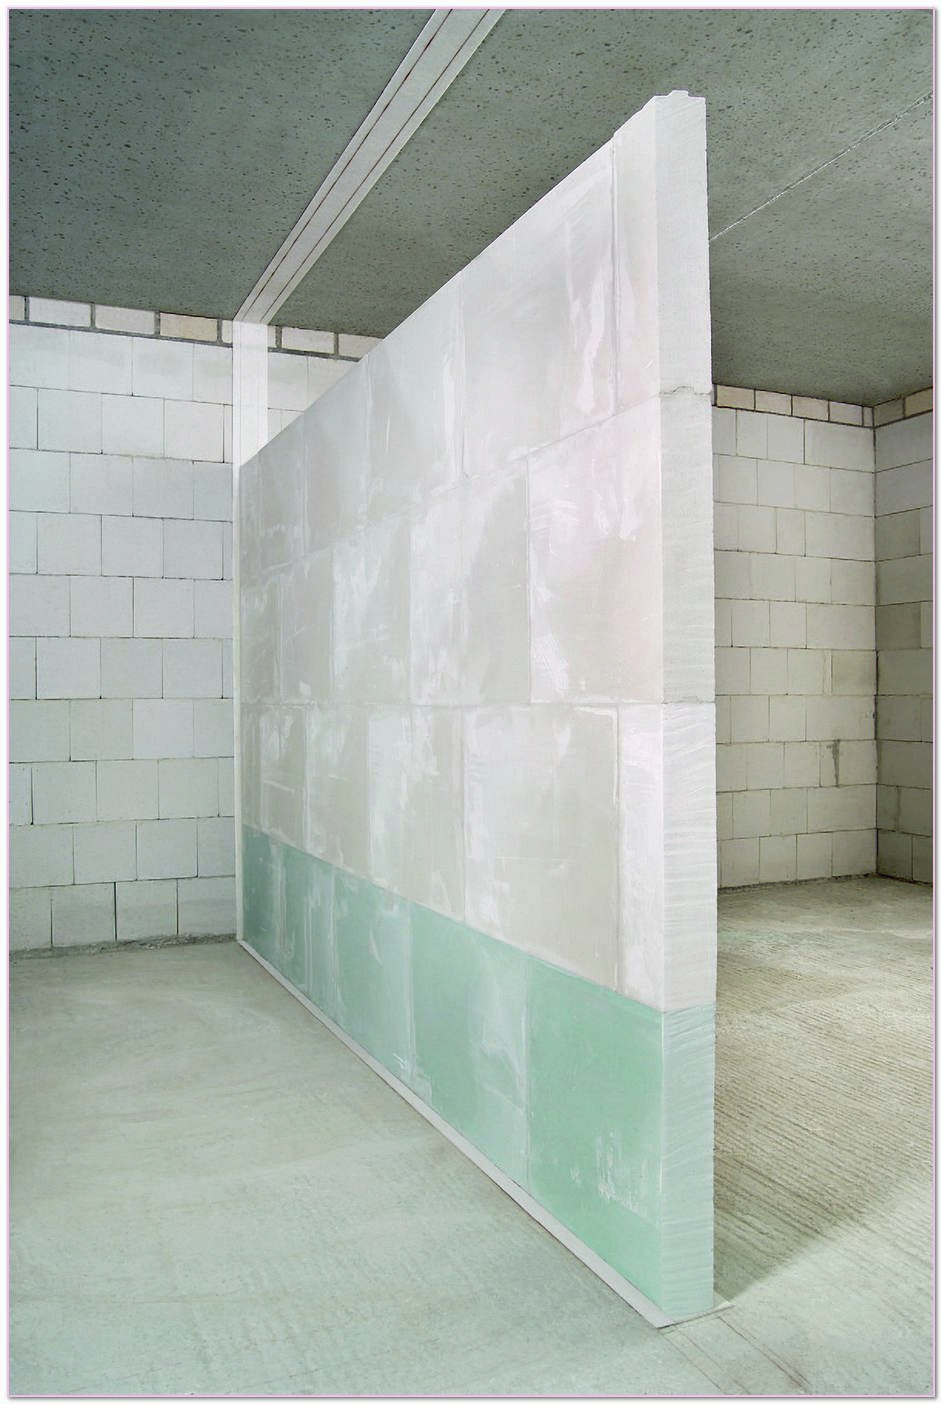 Standard Specification For Non Loadbearing Concrete Units CMU Basics. Units Mortar Joints